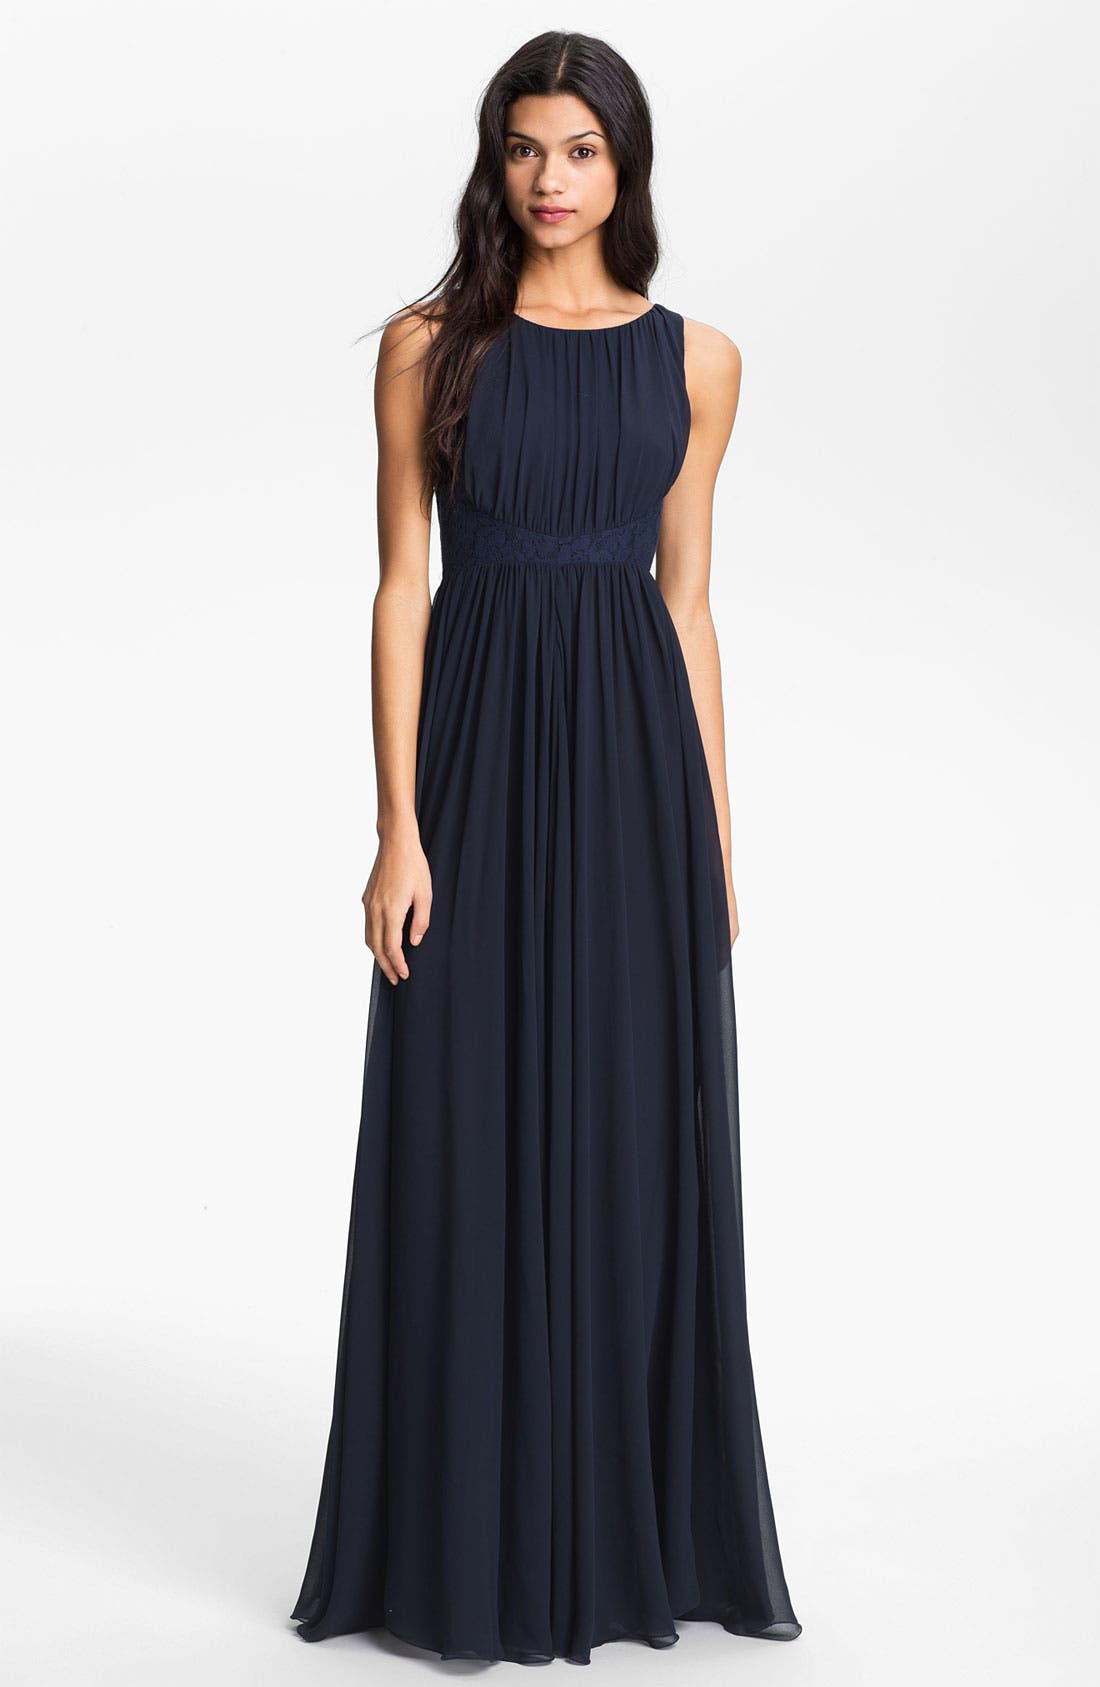 Main Image - French Connection 'Summer Spell' Chiffon Maxi Dress